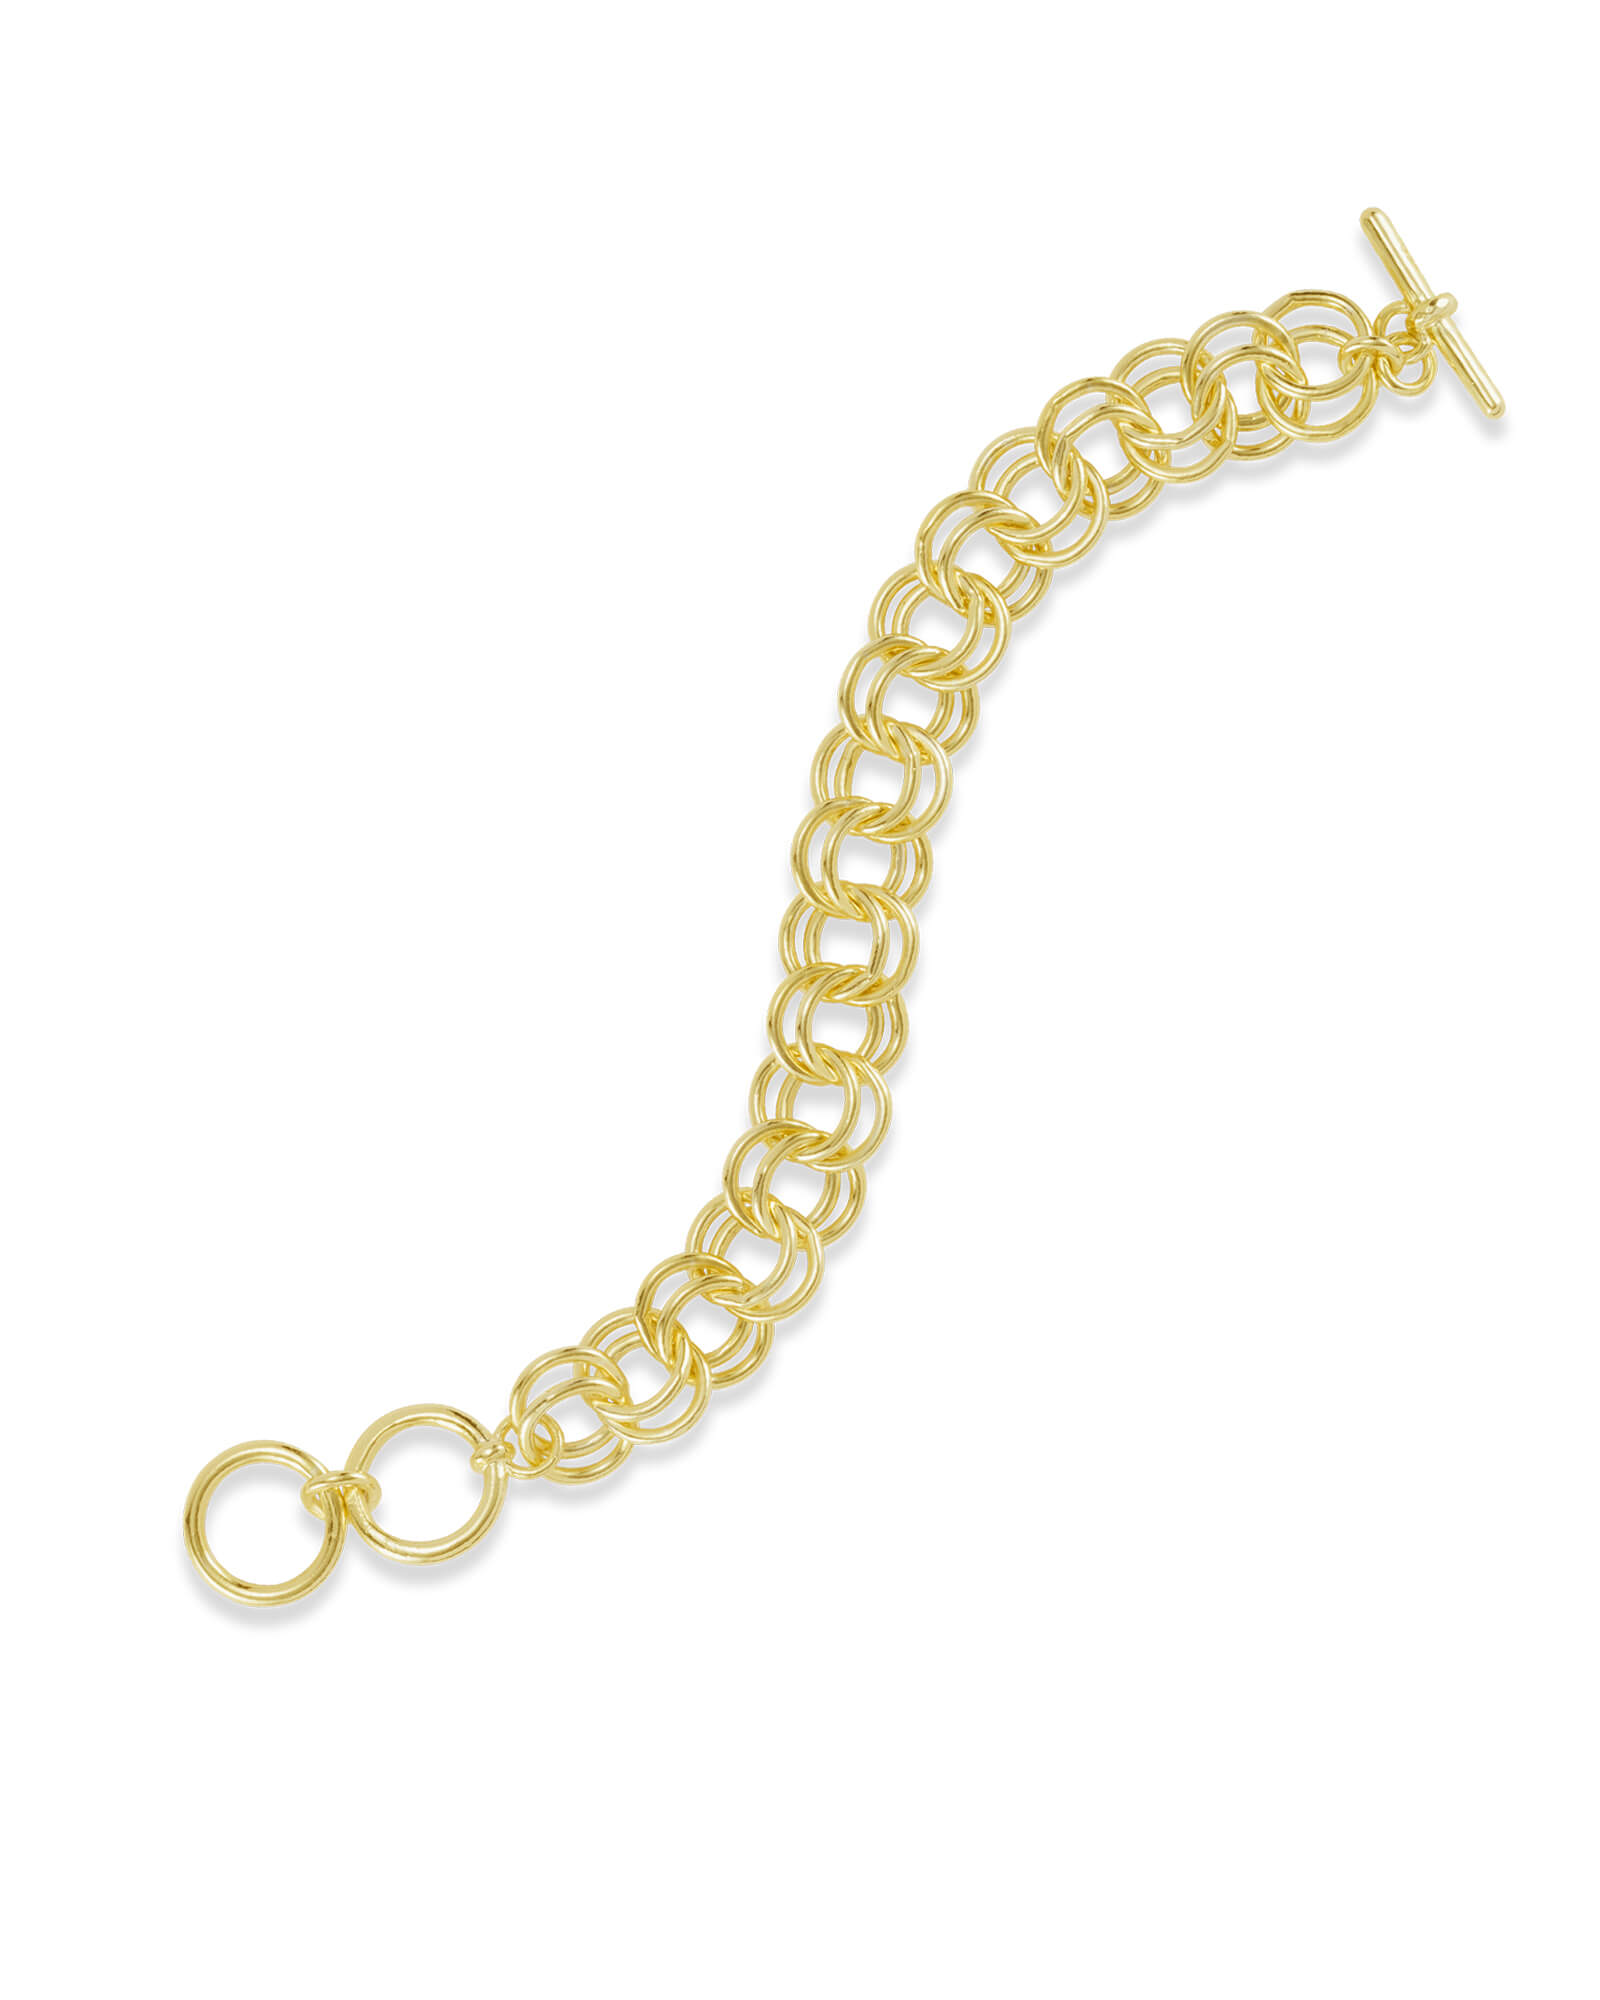 Petite Double Link Toggle Bracelet in Gold